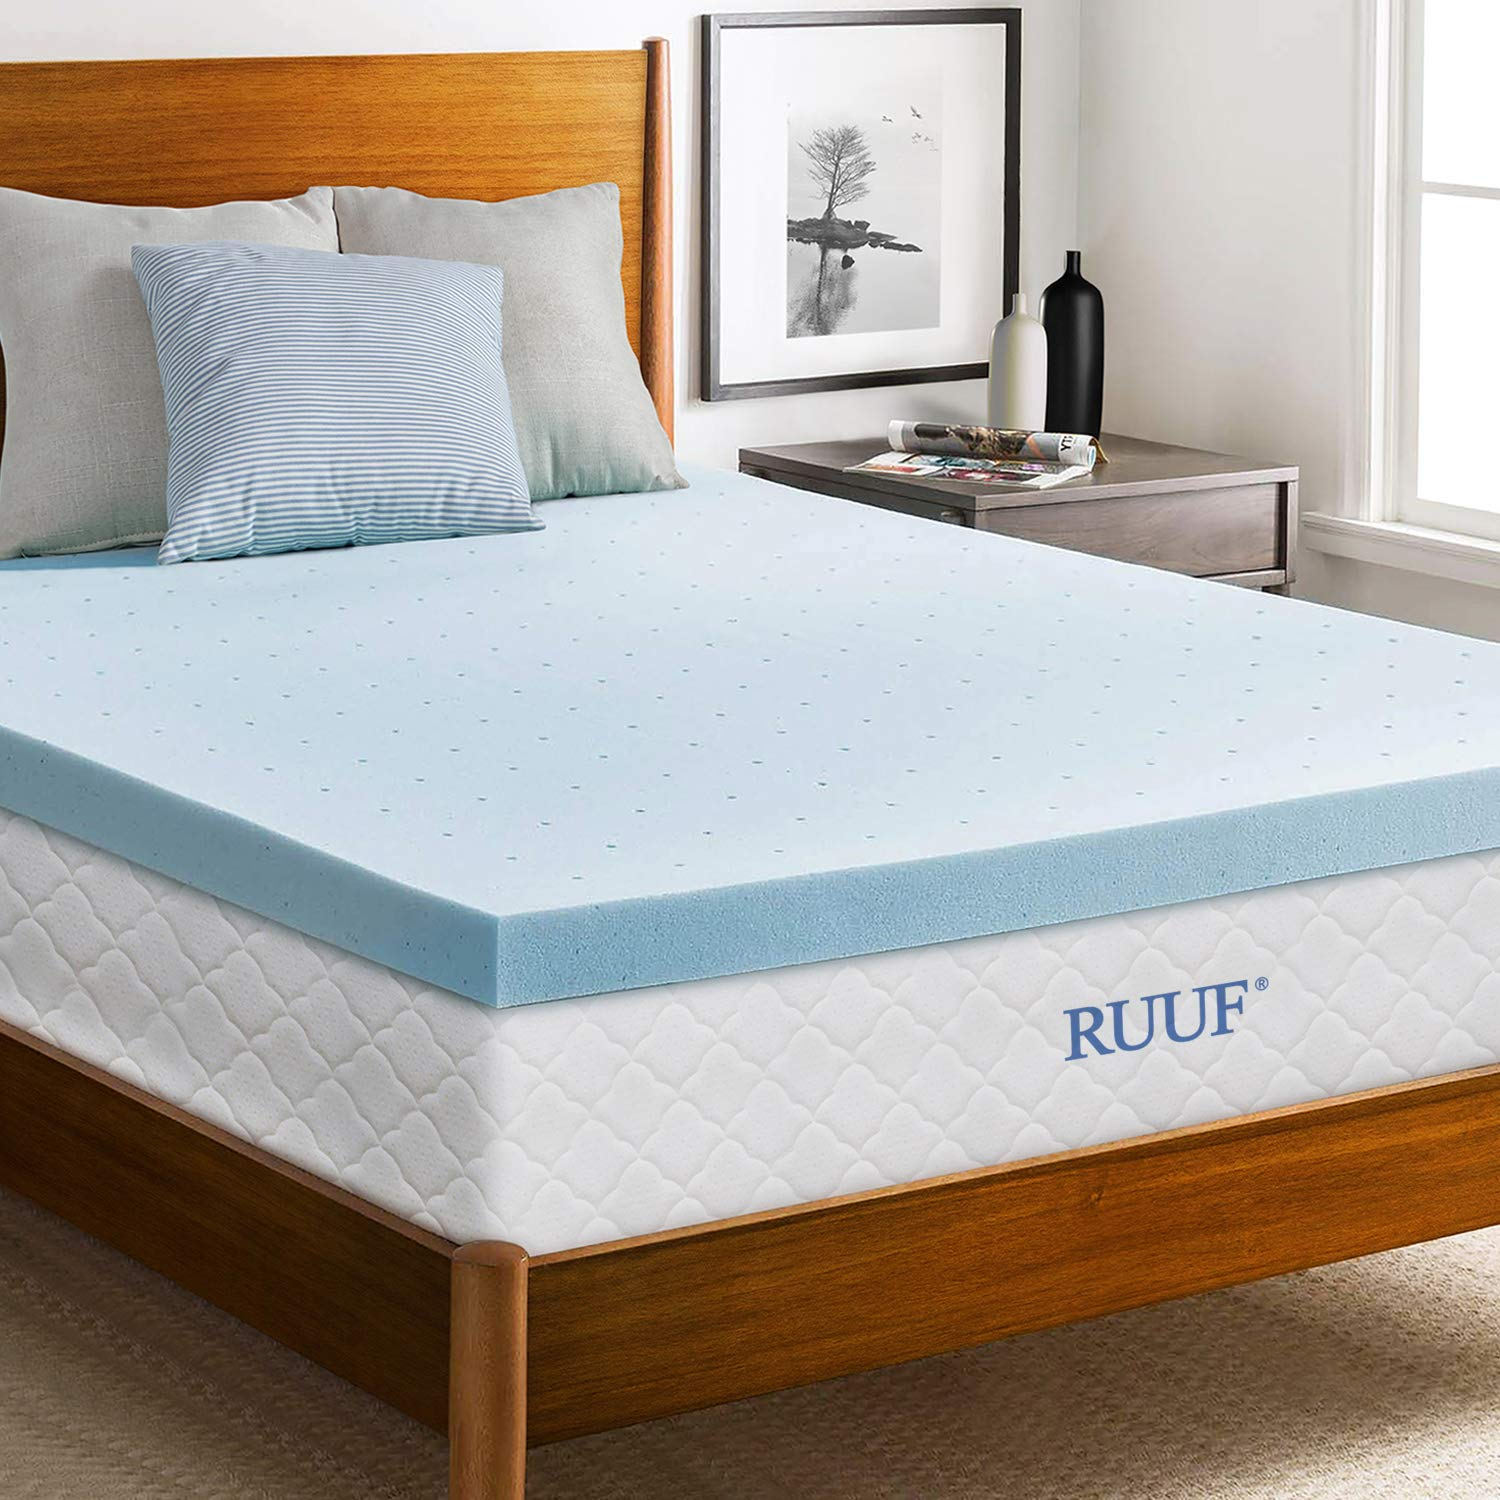 RUUF Mattress Topper, Gel-Infused Memory Foam Mattress Topper with Cooling Technology, 3 inch, Queen